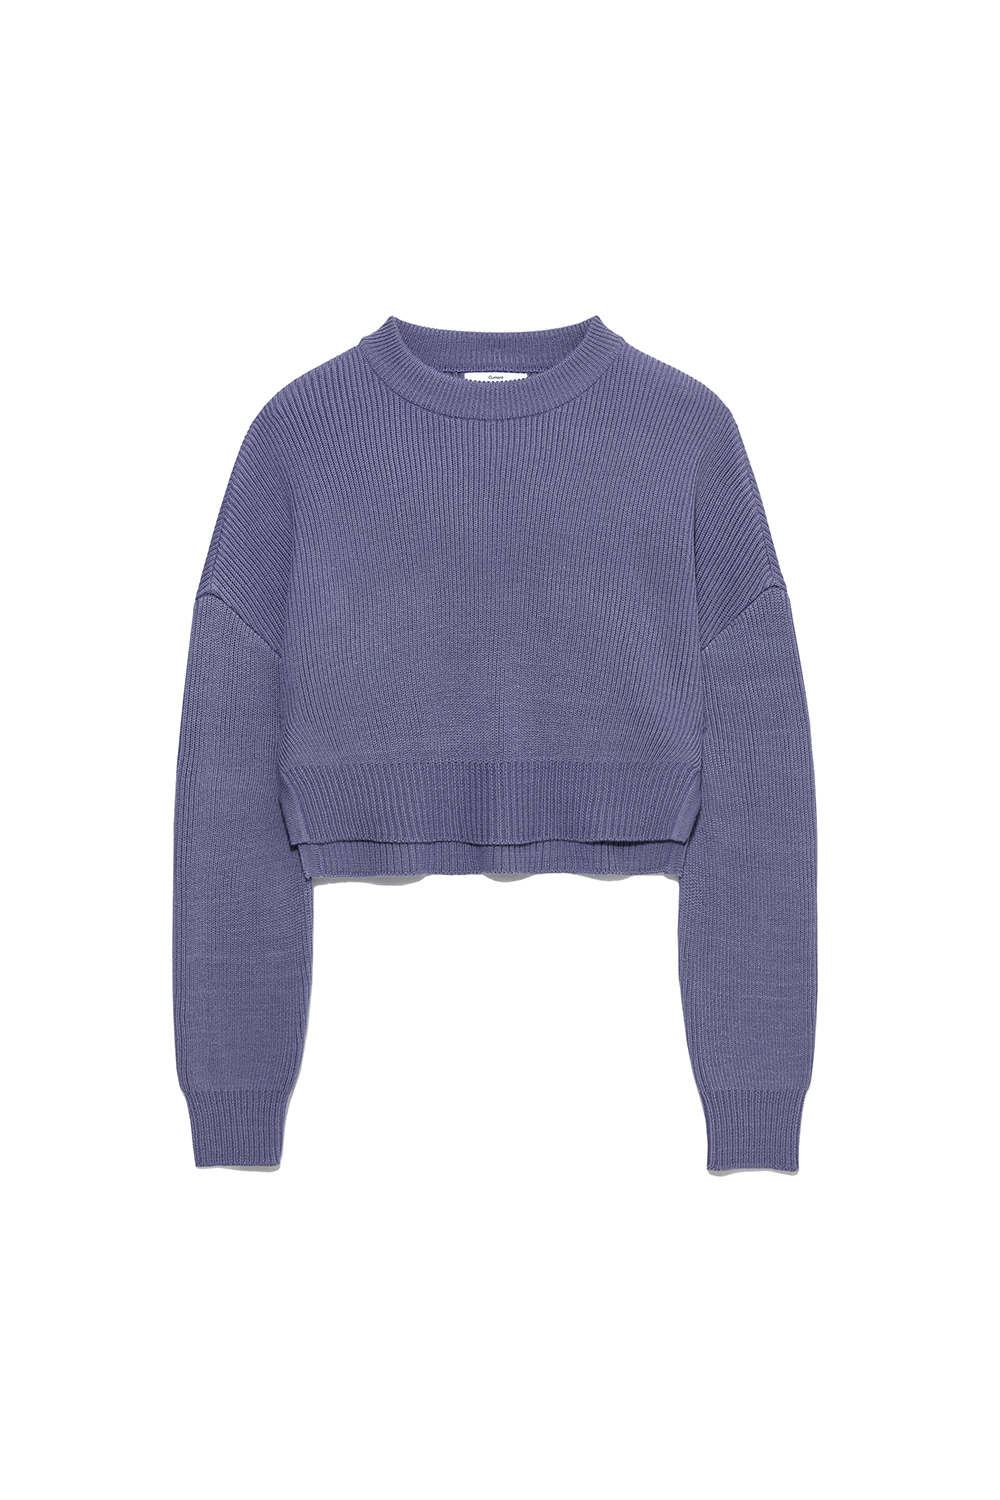 Slit Knit Crewneck Women [Purple]